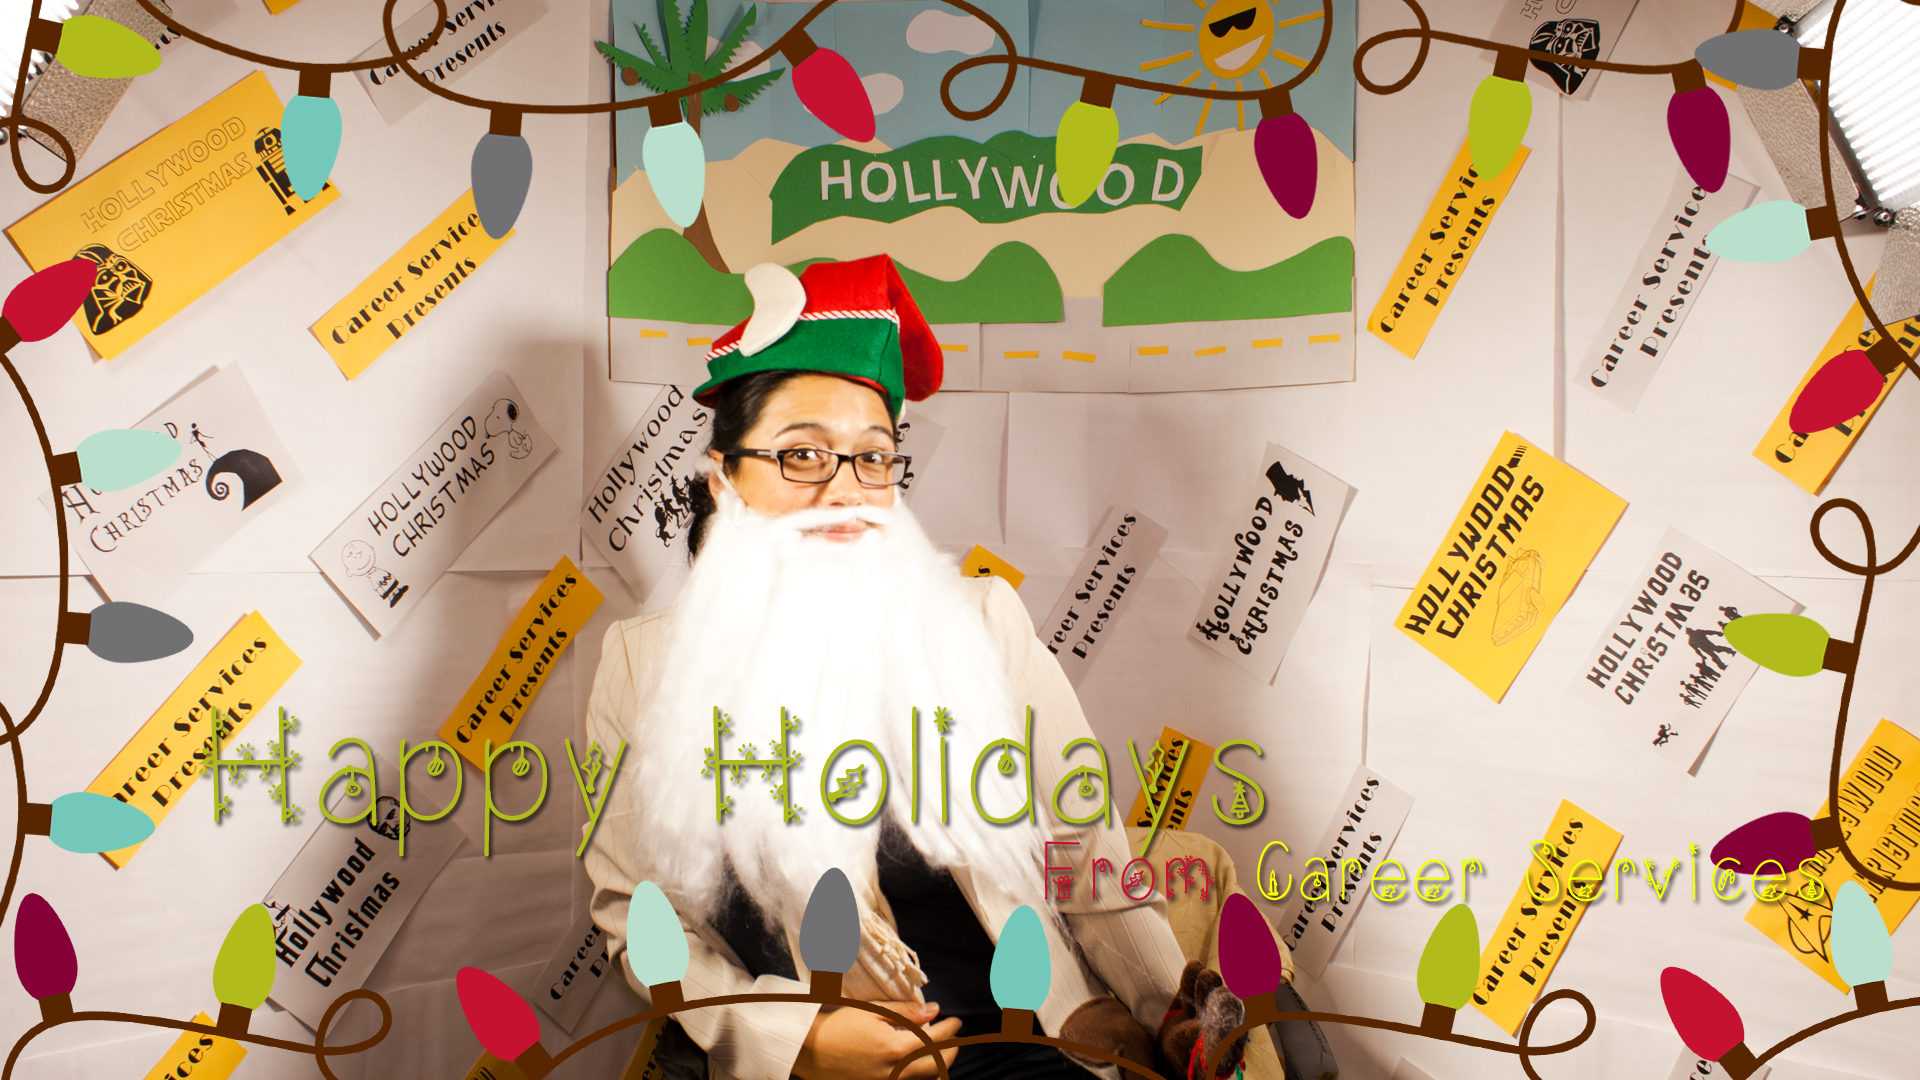 Young woman at 2013 Hollywood Christmas party - Pepperdine GSEP